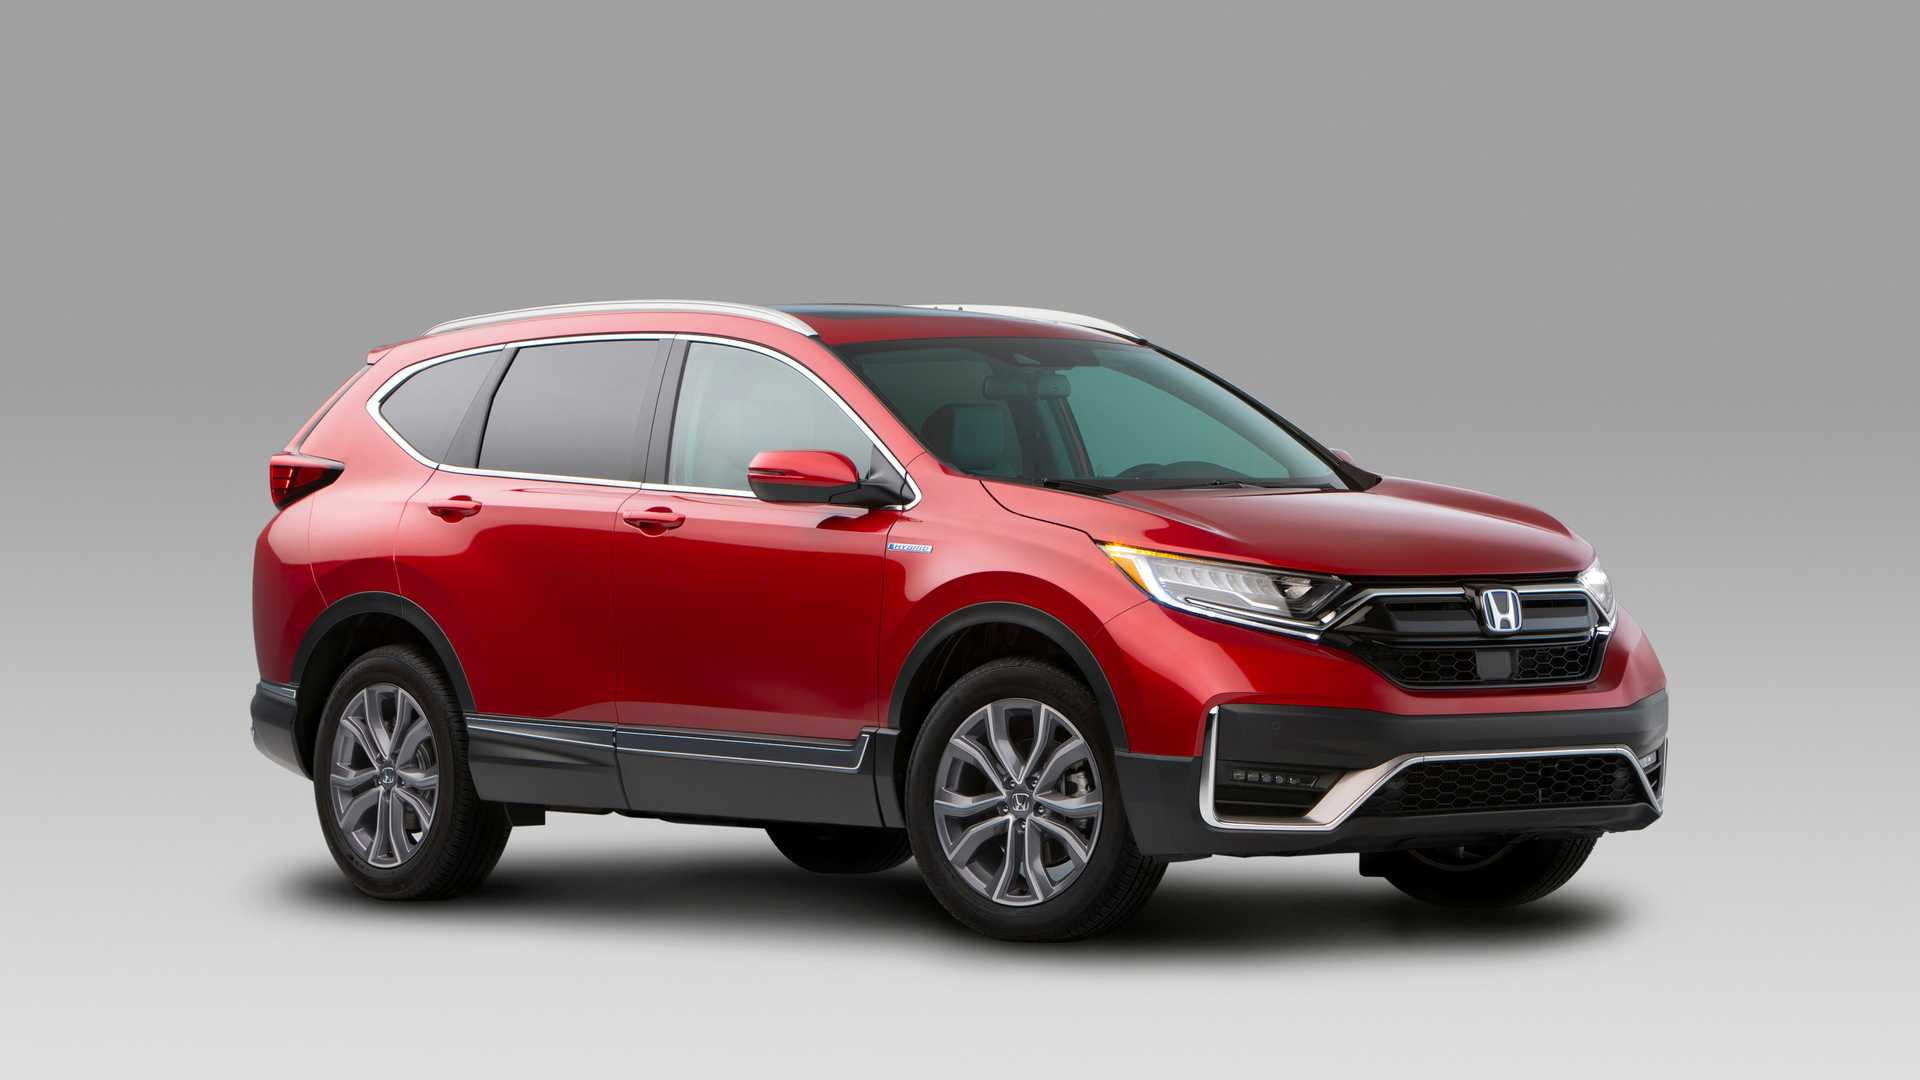 2020 Honda Cr V Usa Release Date Specs And Price >> 2020 Honda Cr V Debuts With Refreshed Styling Hybrid Version